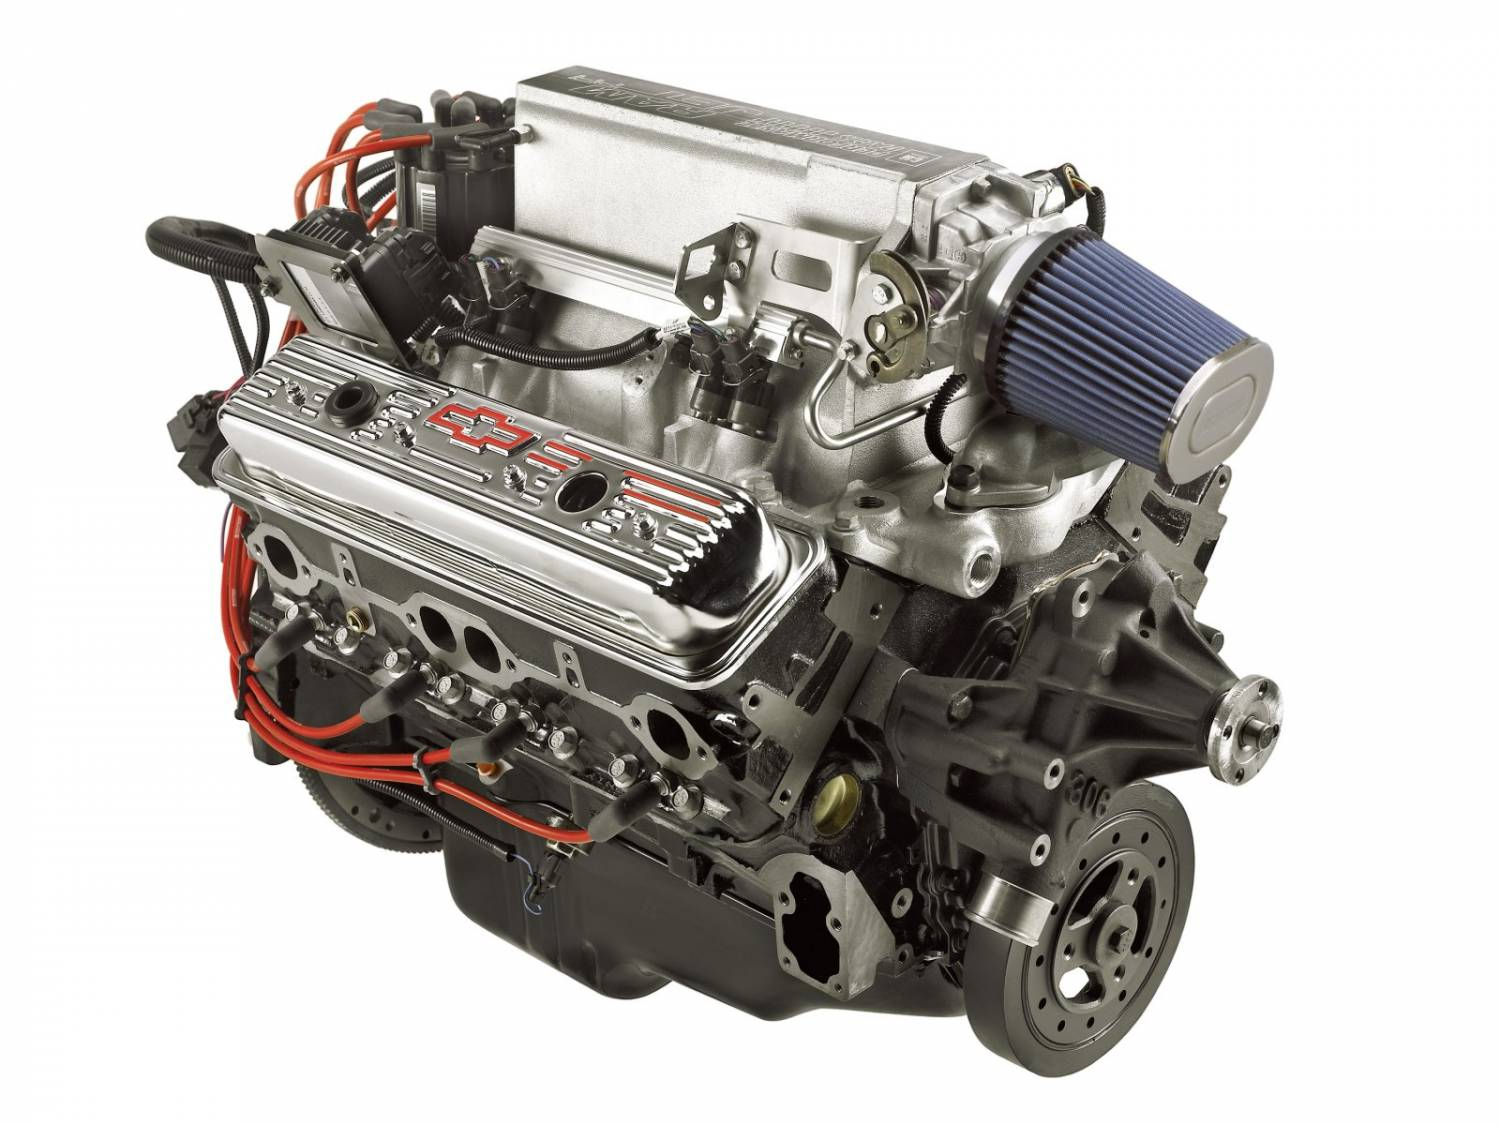 hight resolution of pace performance gmp 4l60erj350 gm ram jet 350cid engine with pagm 4l60e trans